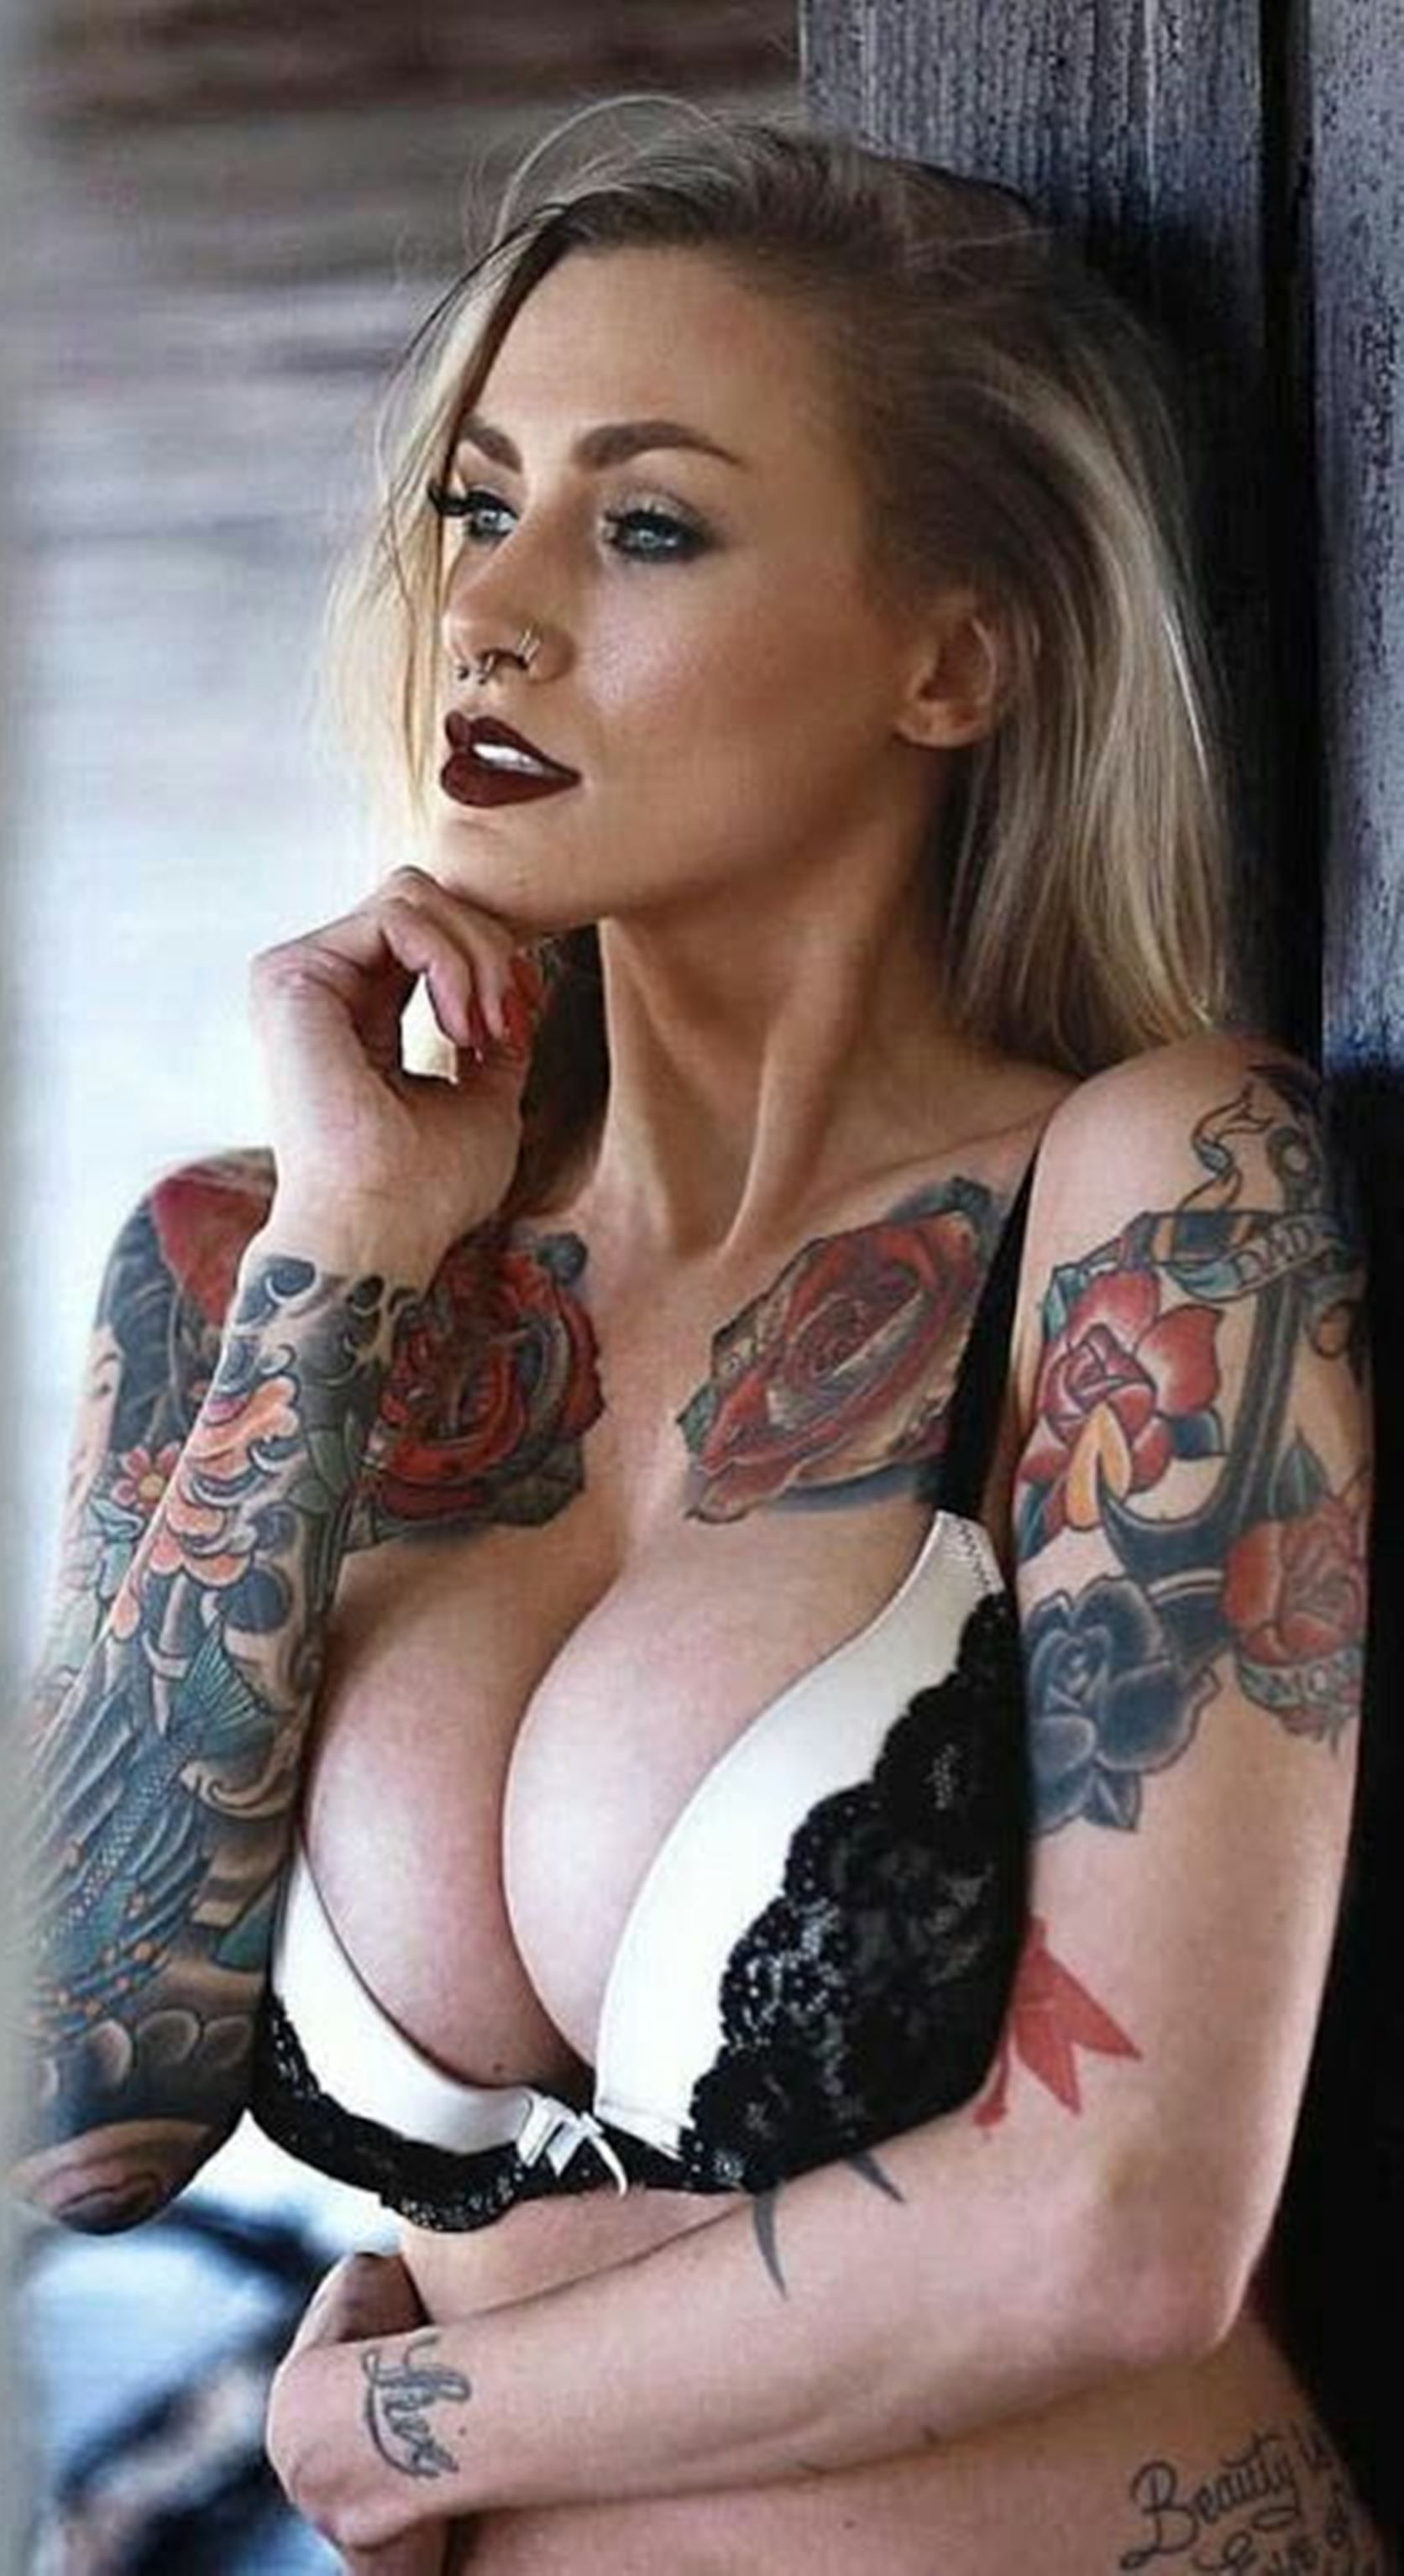 Tattoo websites for girls - Explore Tattoo Ink Tatoo And More